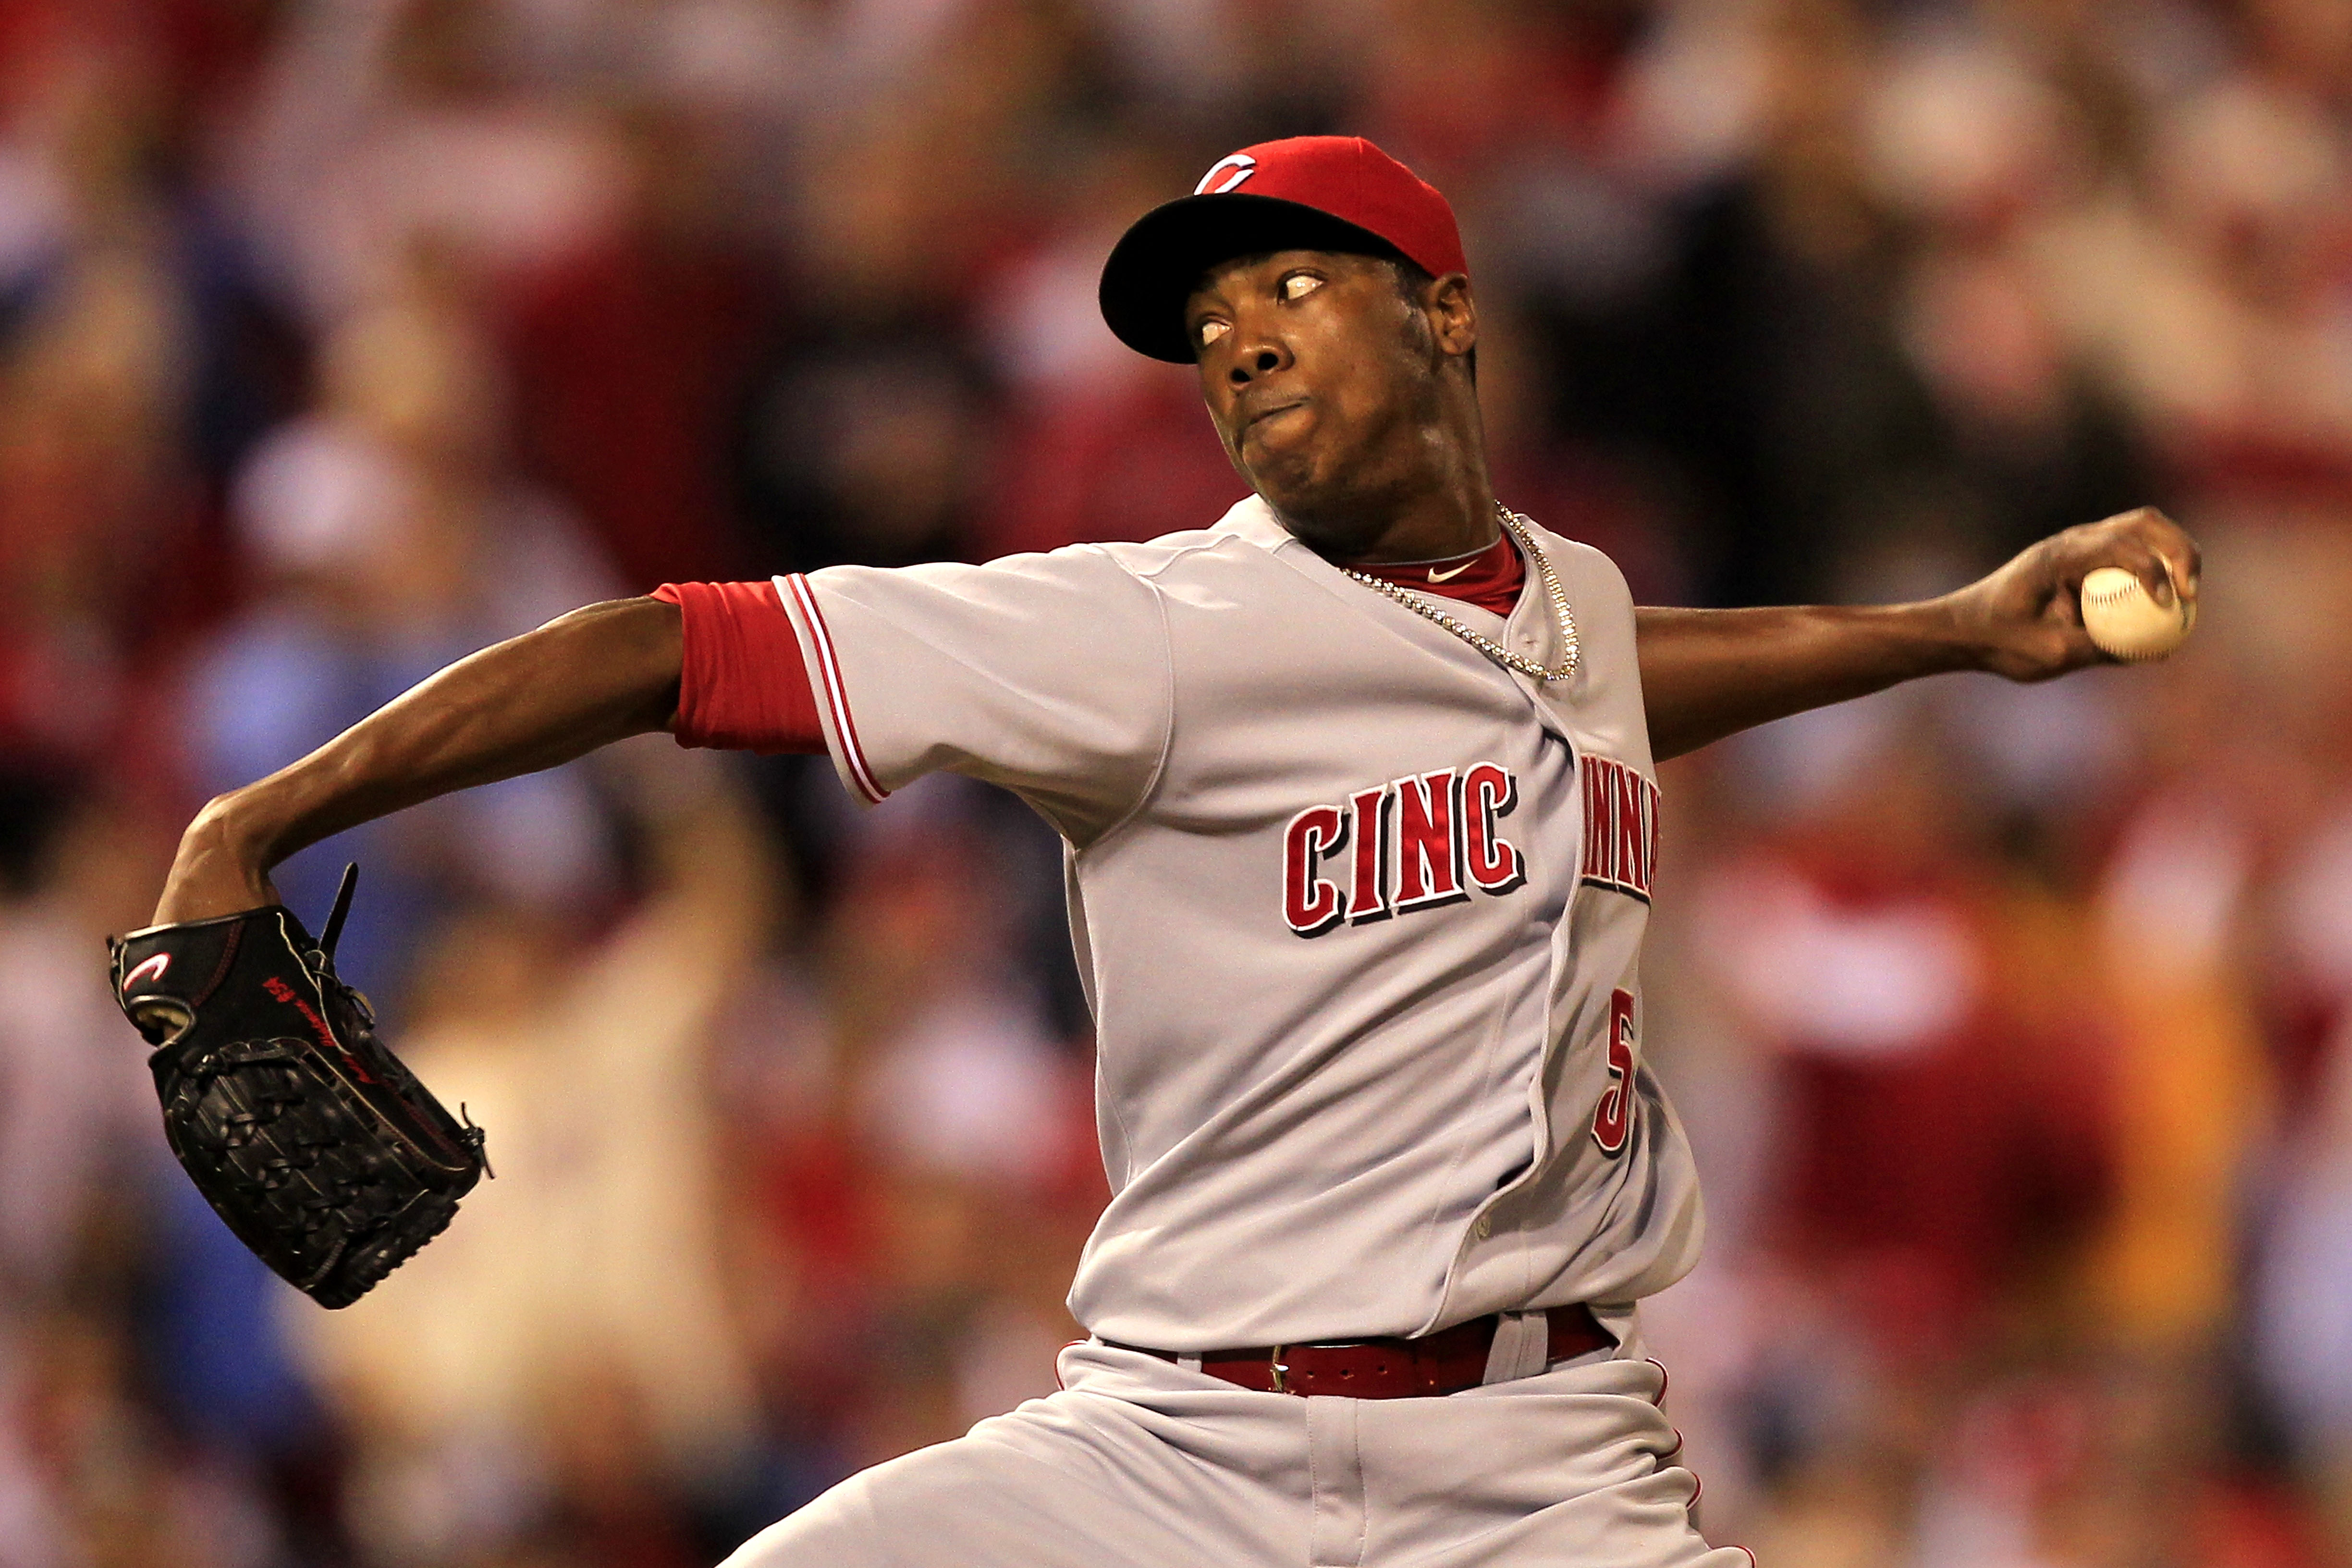 PHILADELPHIA - OCTOBER 08: Aroldis Chapman #54 of the Cincinnati Reds pitches against the Philadelphia Phillies in game 2 of the NLDS at Citizens Bank Park on October 8, 2010 in Philadelphia, Pennsylvania. The Phillies defeated the Reds 7-4.  (Photo by Ch